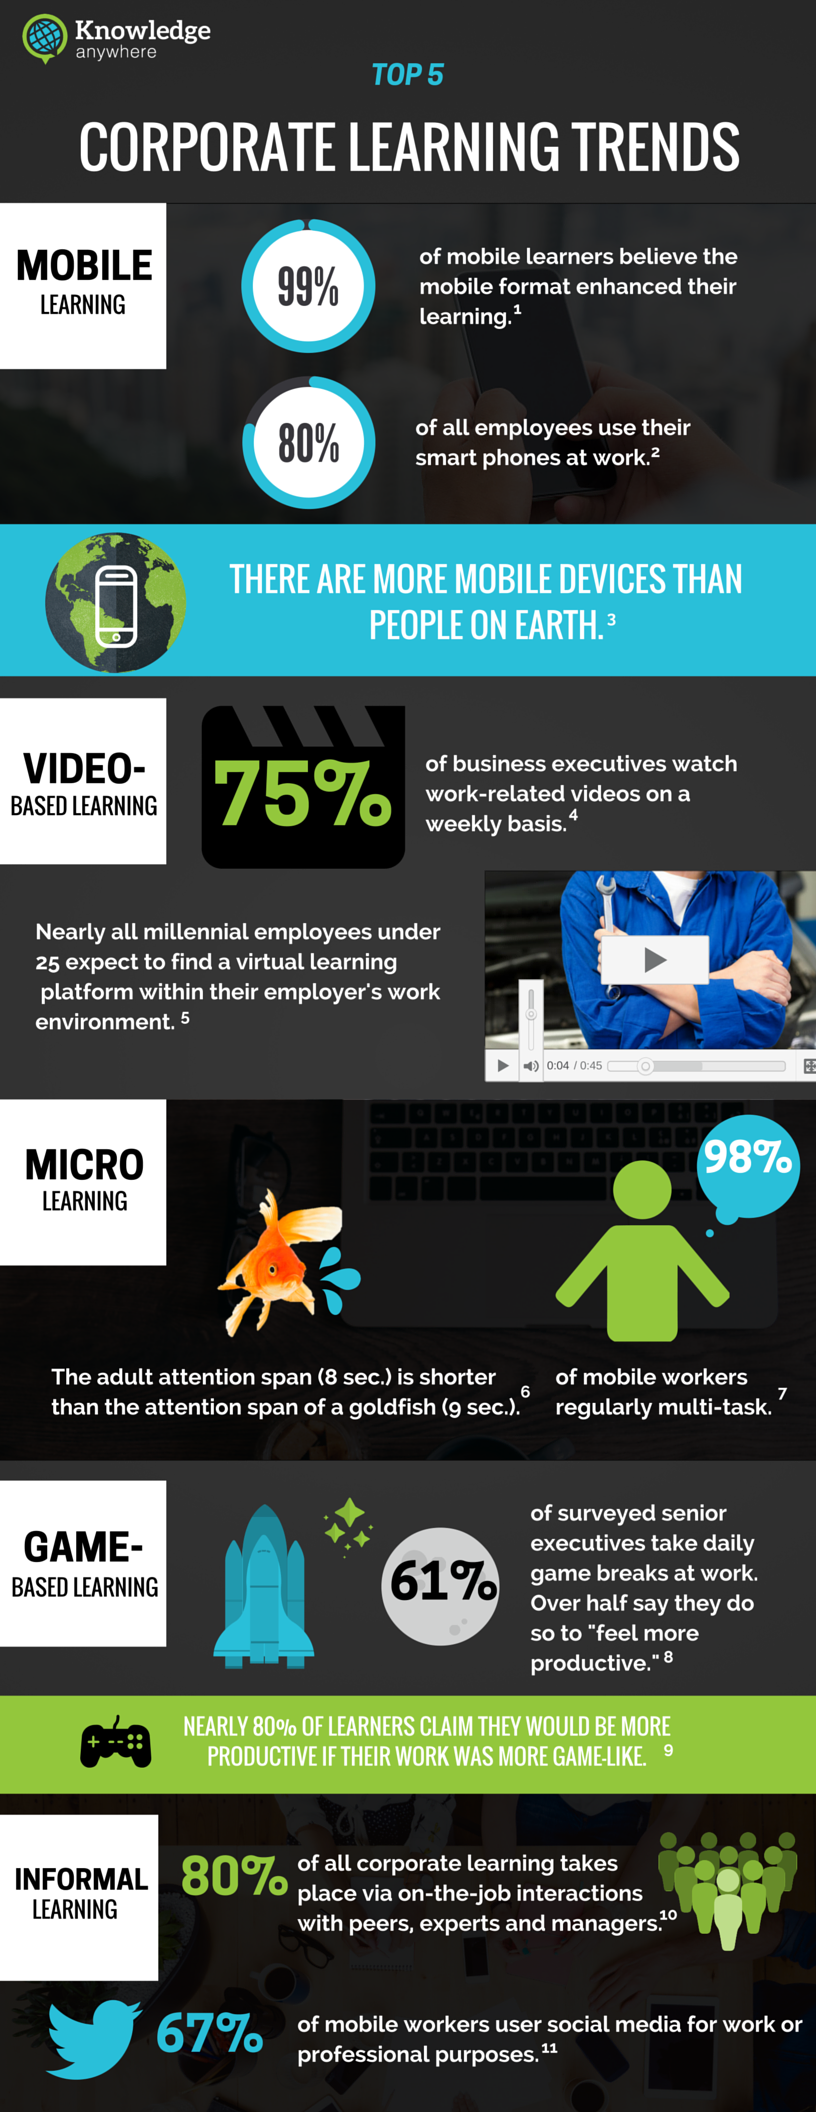 Top 5 Corporate Learning Trends for 2016 Infographic - http://elearninginfographics.com/top-5-corporate-learning-trends-2016-infographic/